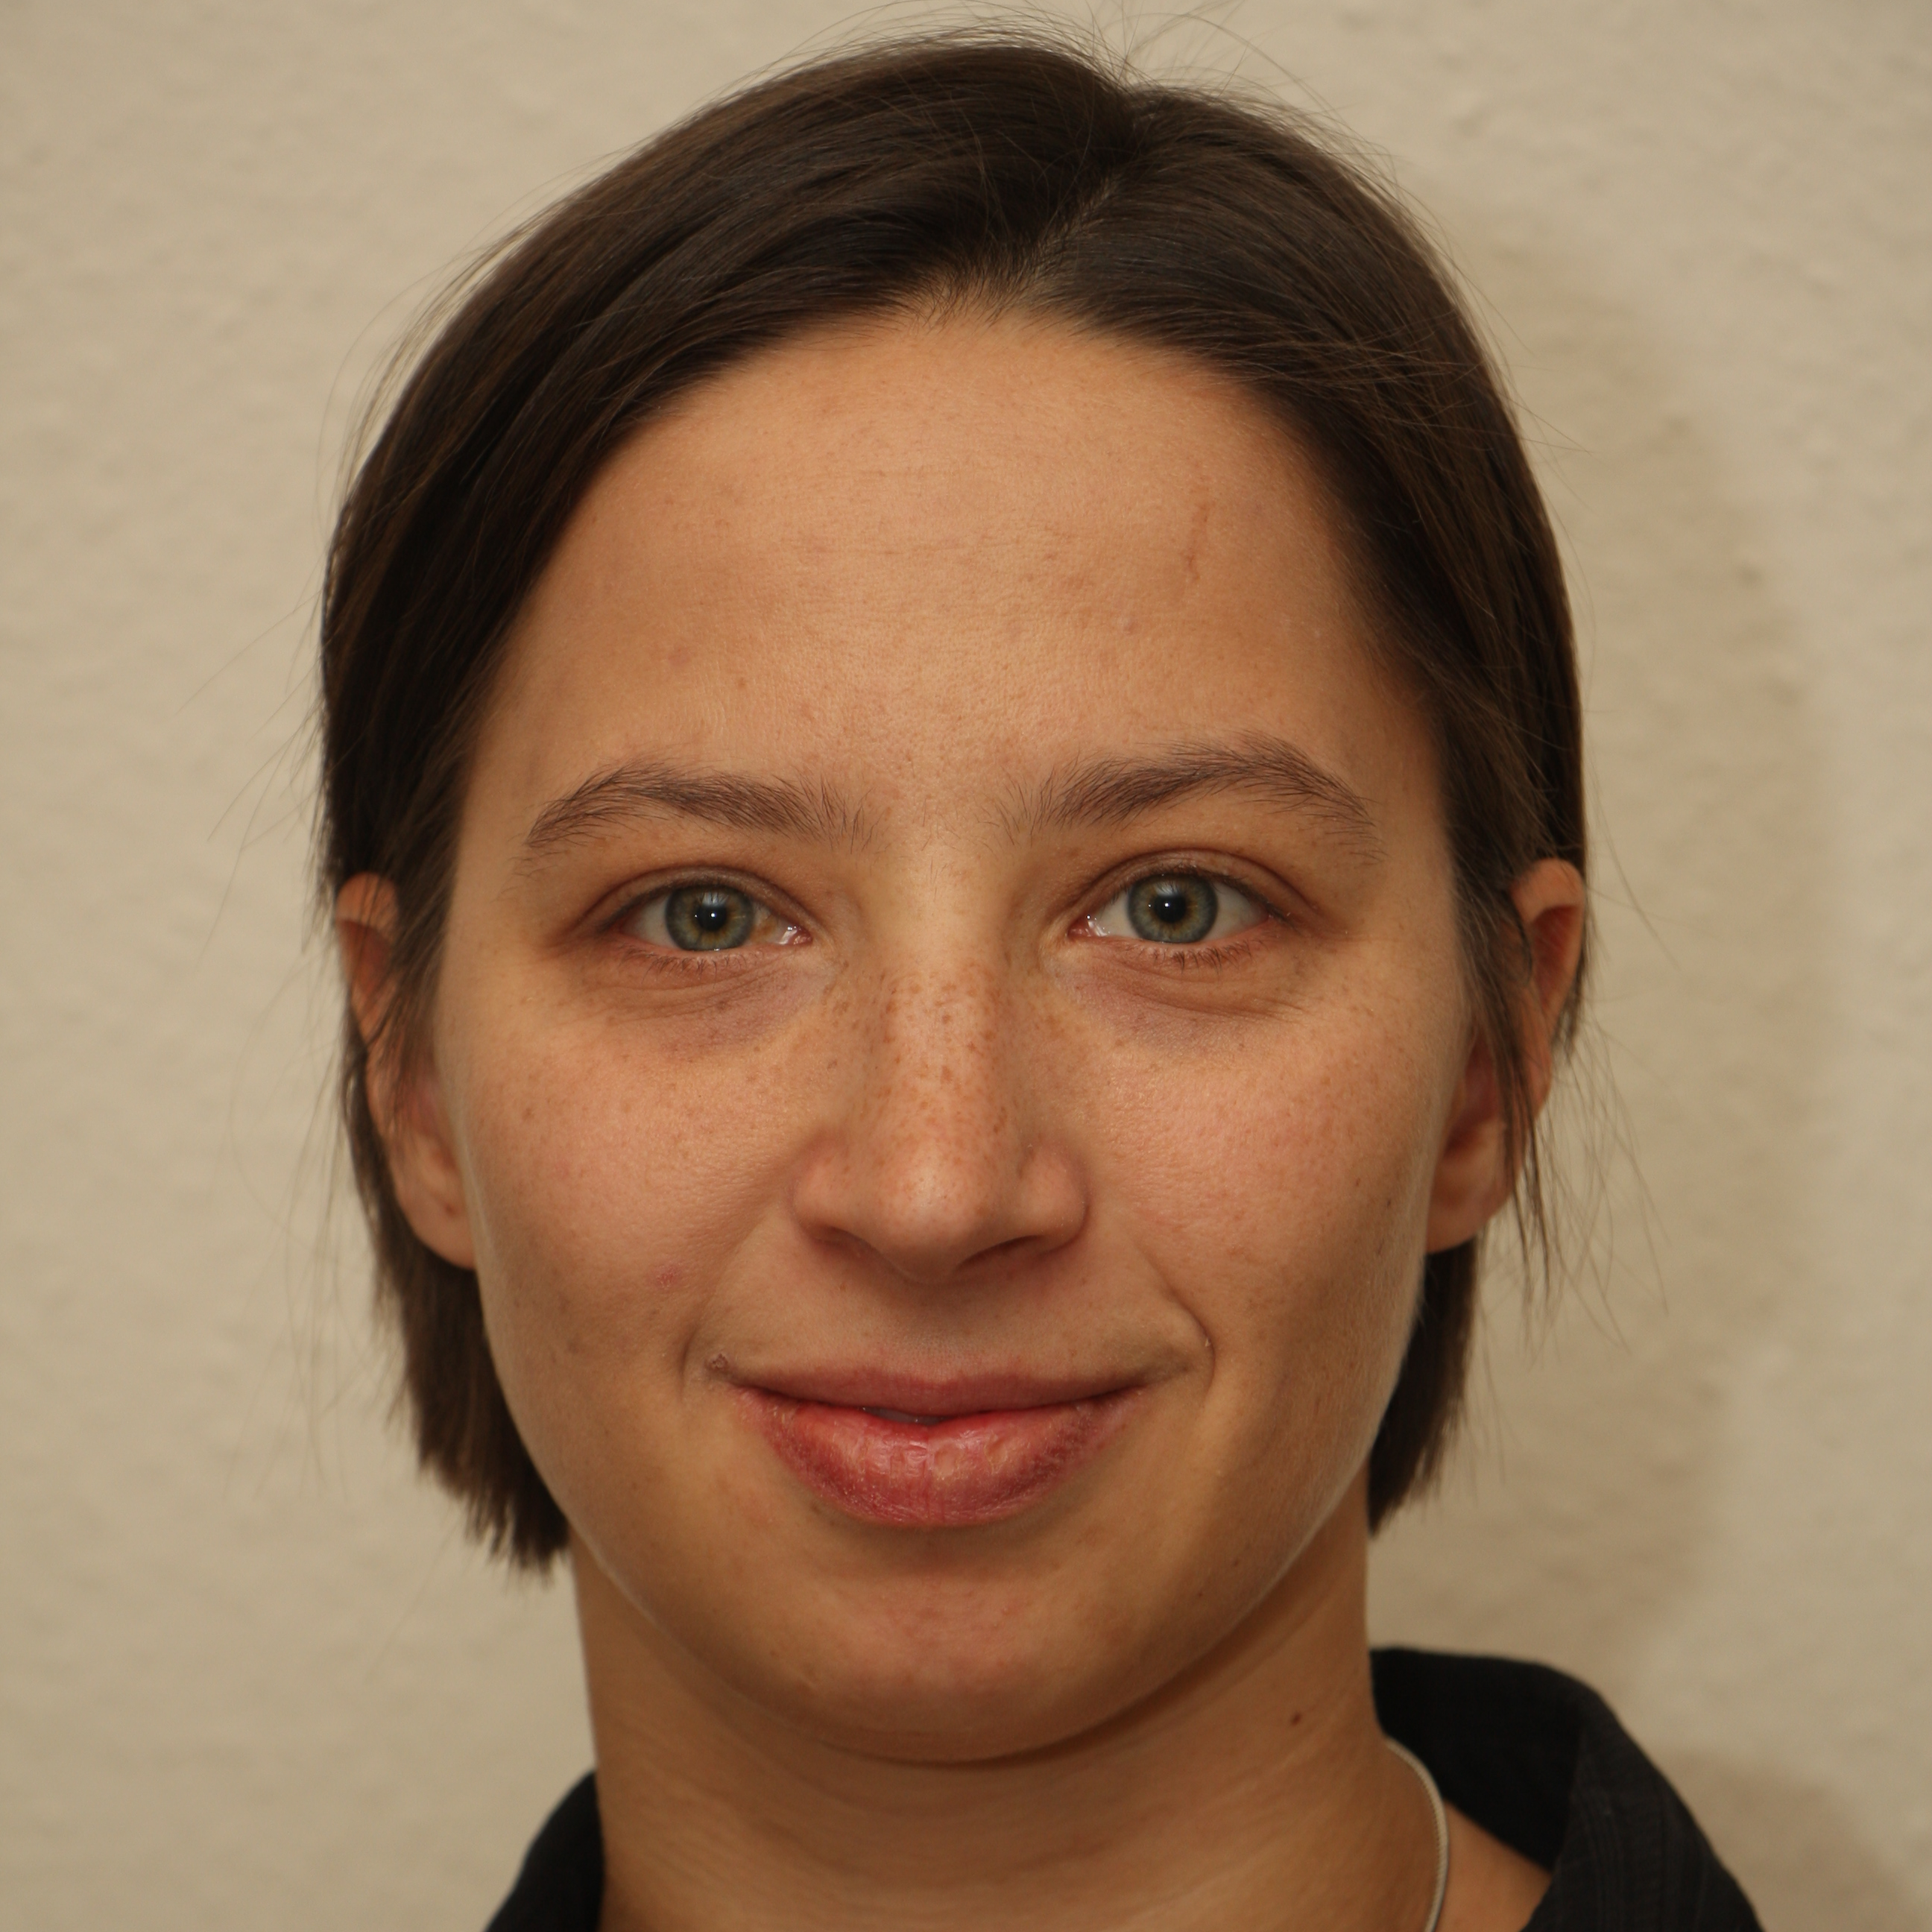 Dr.-Ing. Ines Wollny, Senior Research Associate at TU Dresden